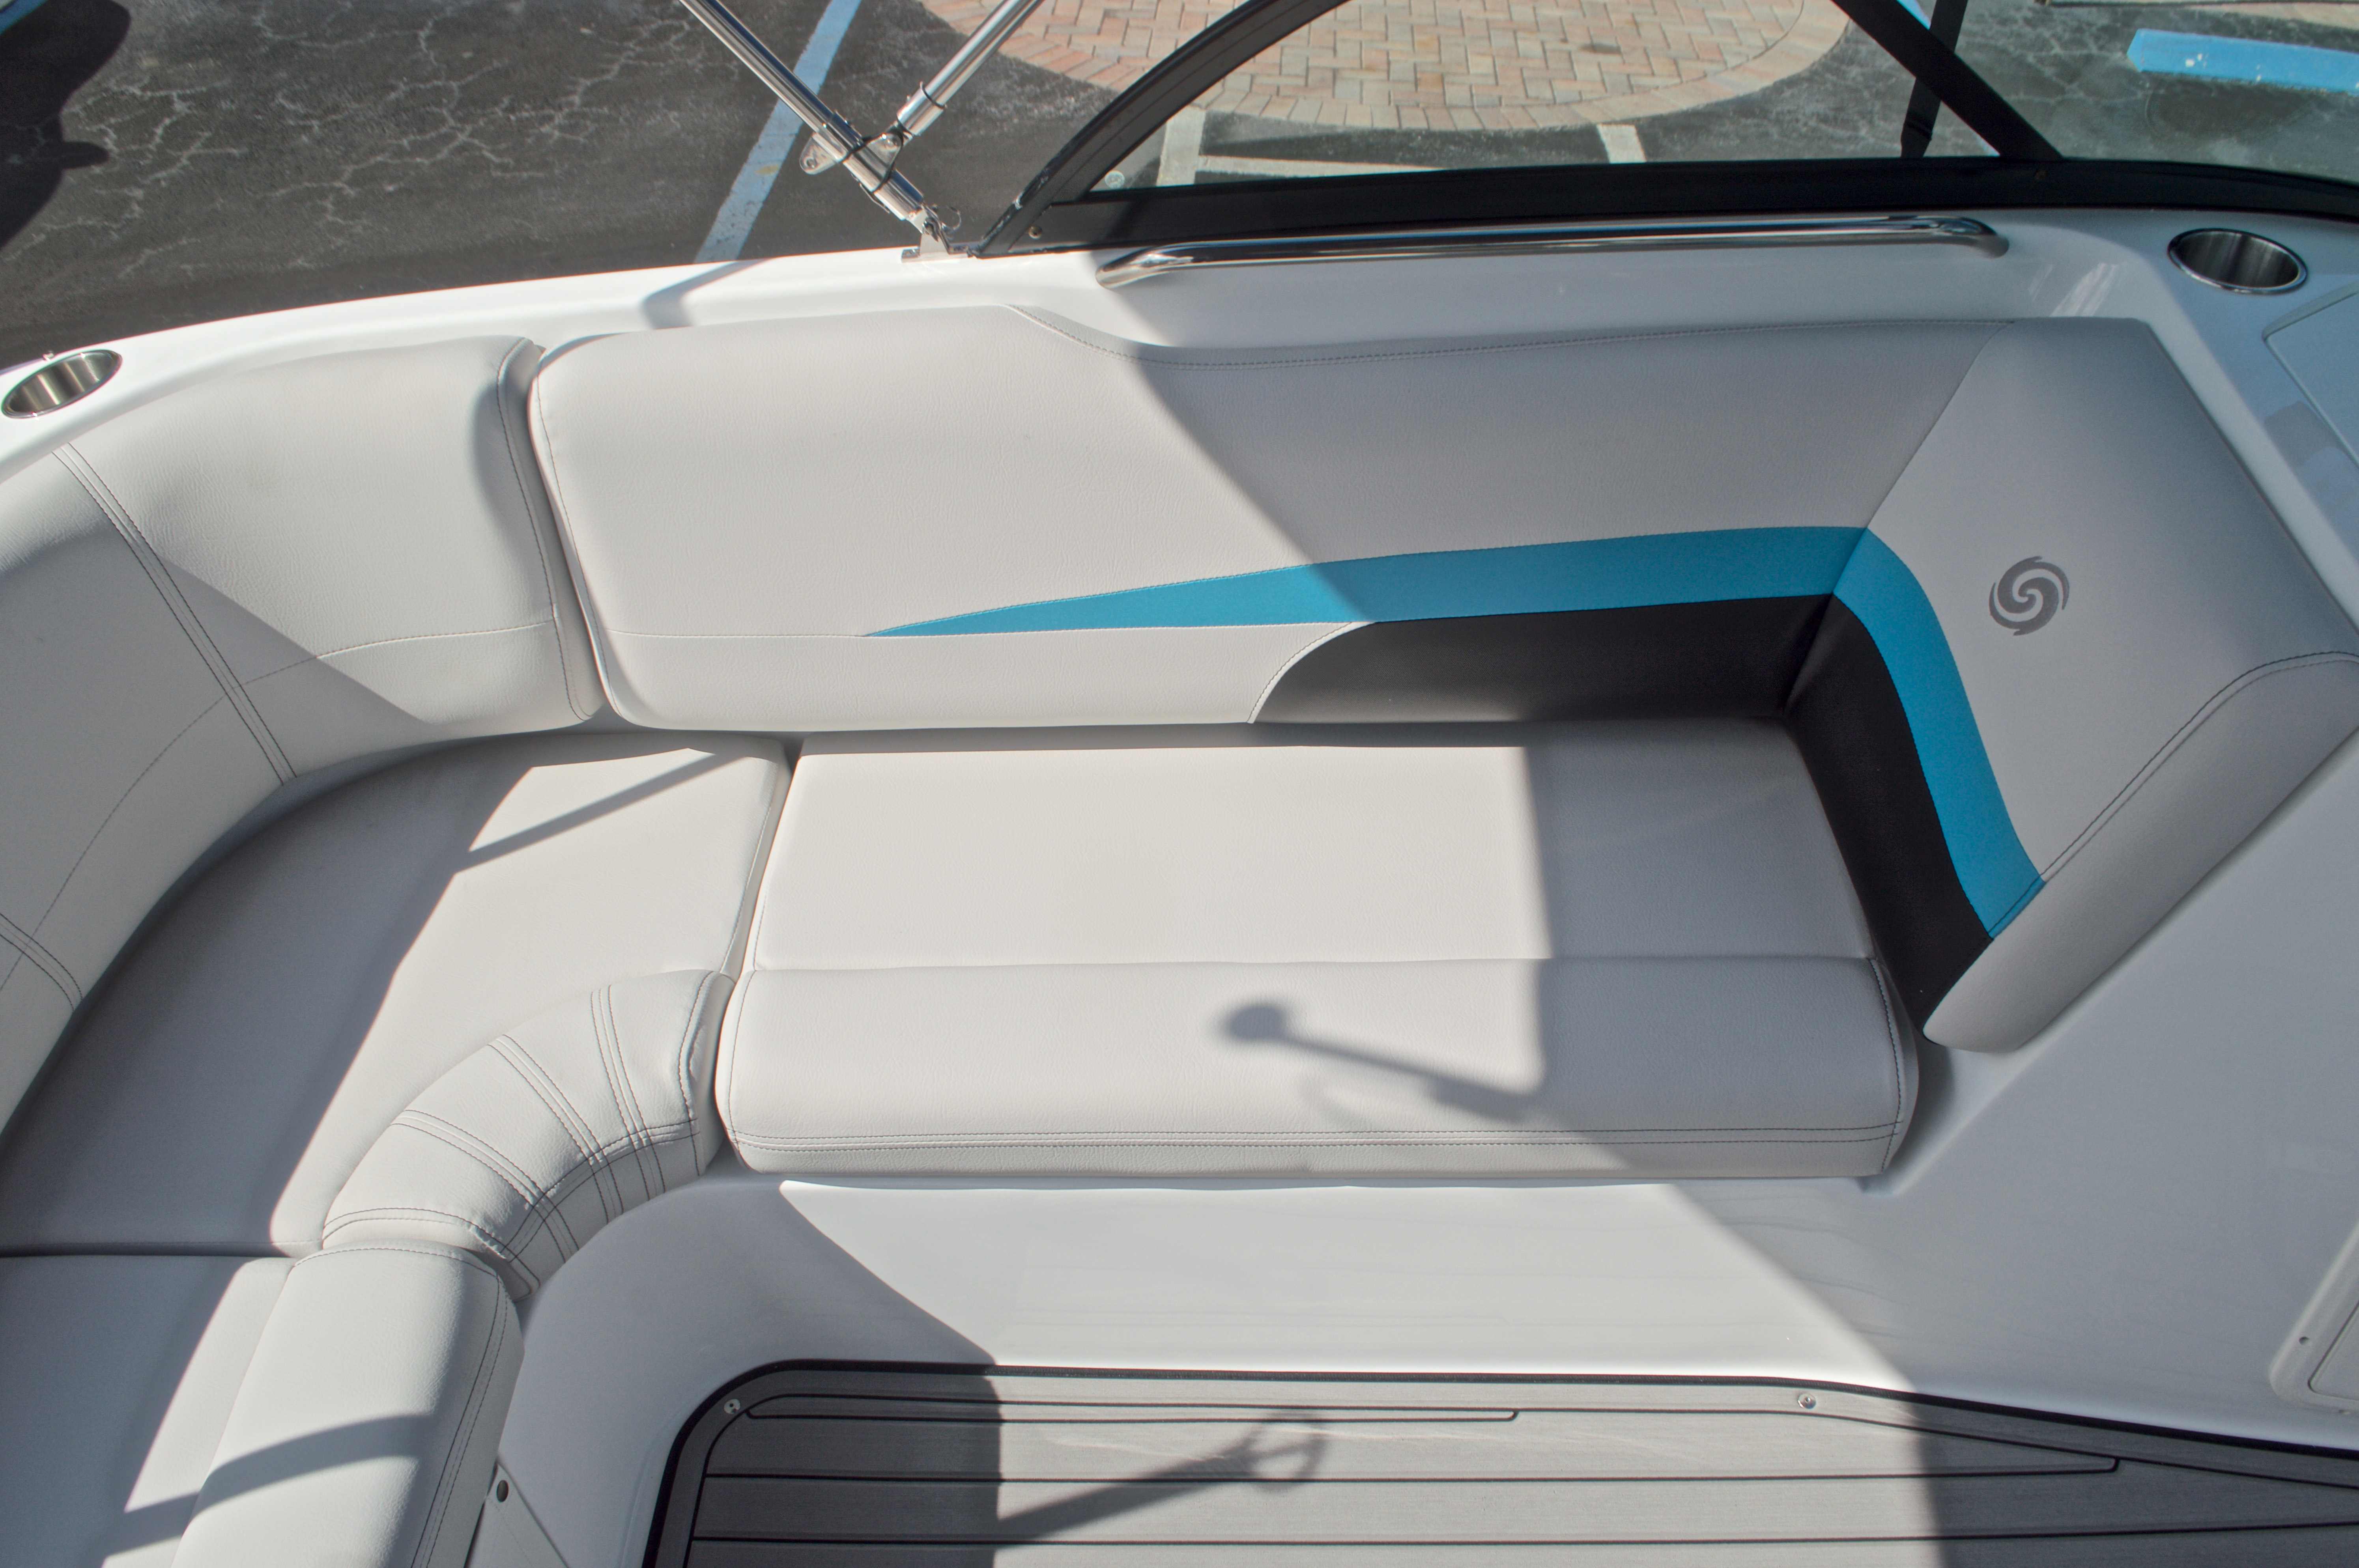 Thumbnail 18 for New 2017 Hurricane SunDeck SD 187 OB boat for sale in West Palm Beach, FL